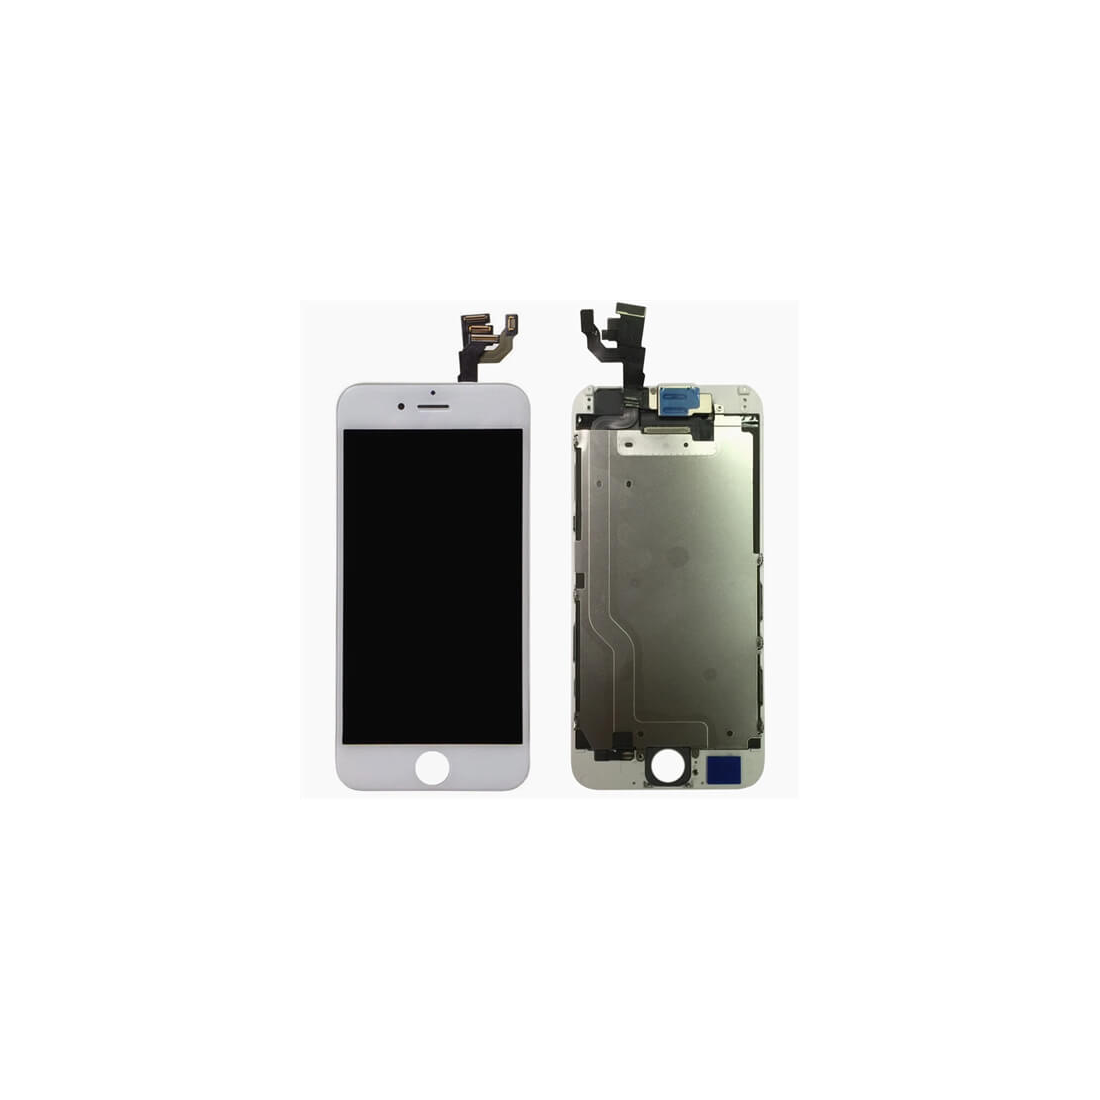 653144a75b3 eTelefon - Display complet iPhone 6 plus alb, pret mic, componente gsm